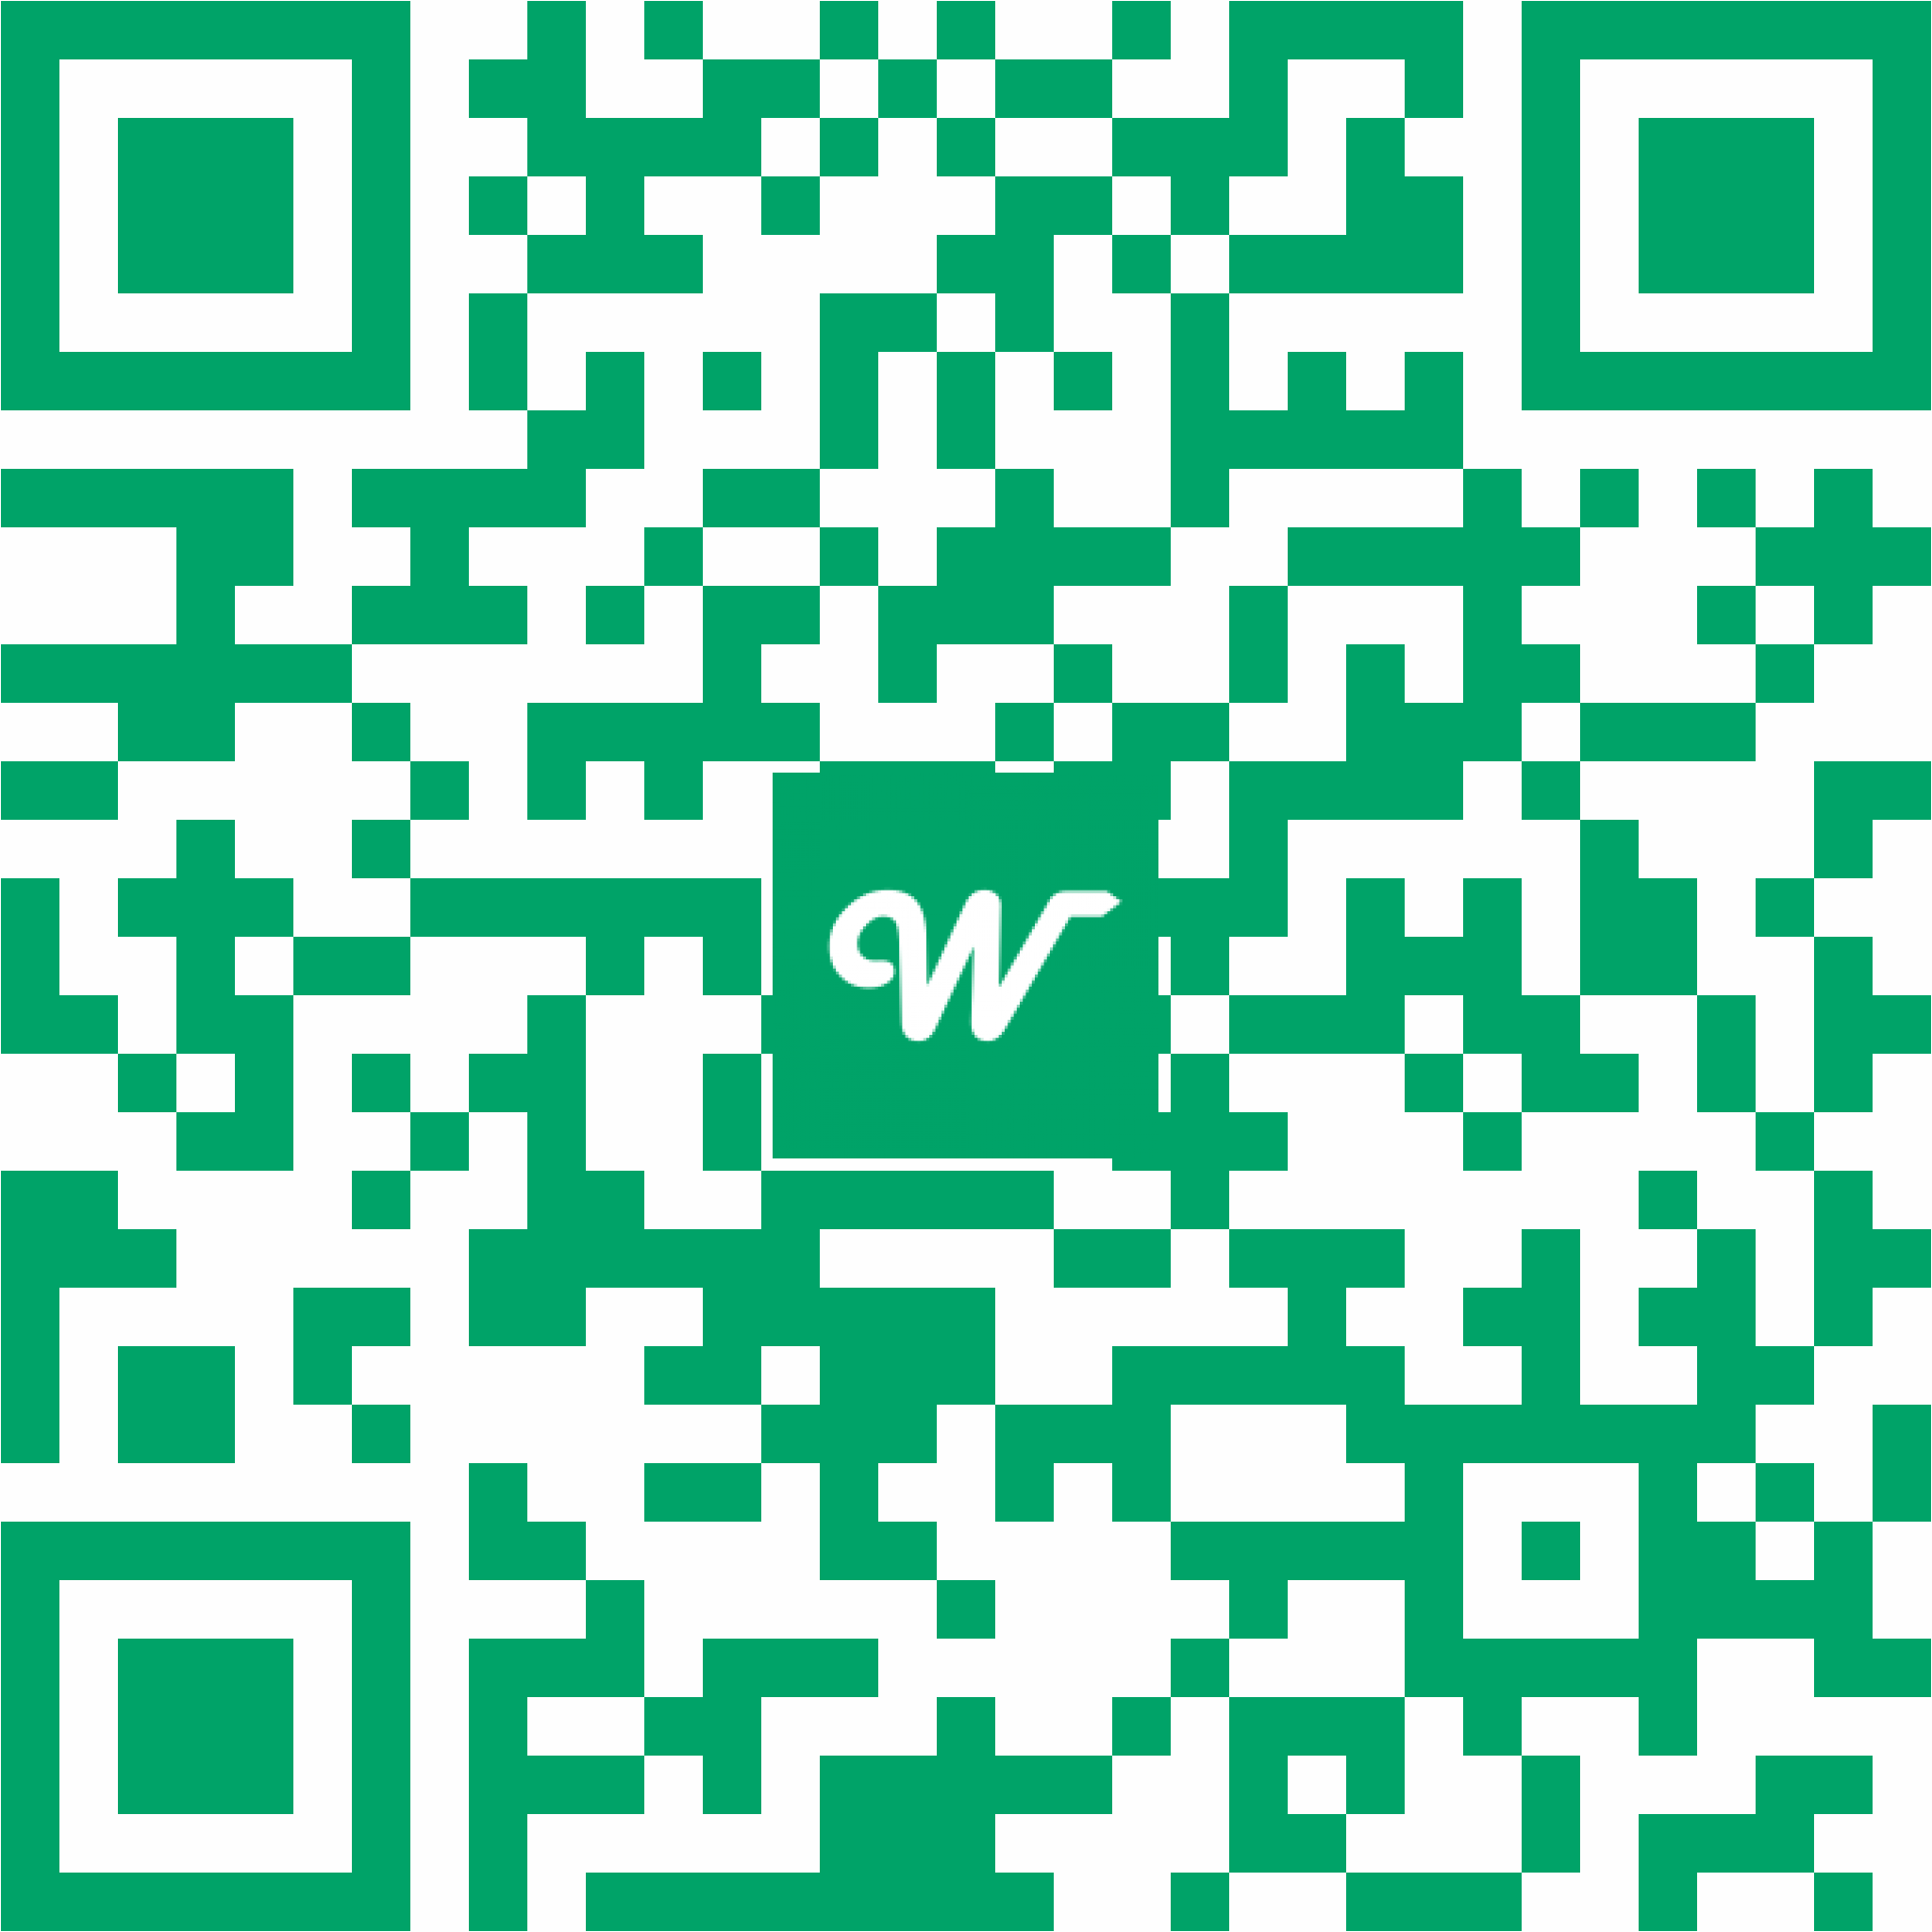 Printable QR code for Sun Inns Hotel Cheras